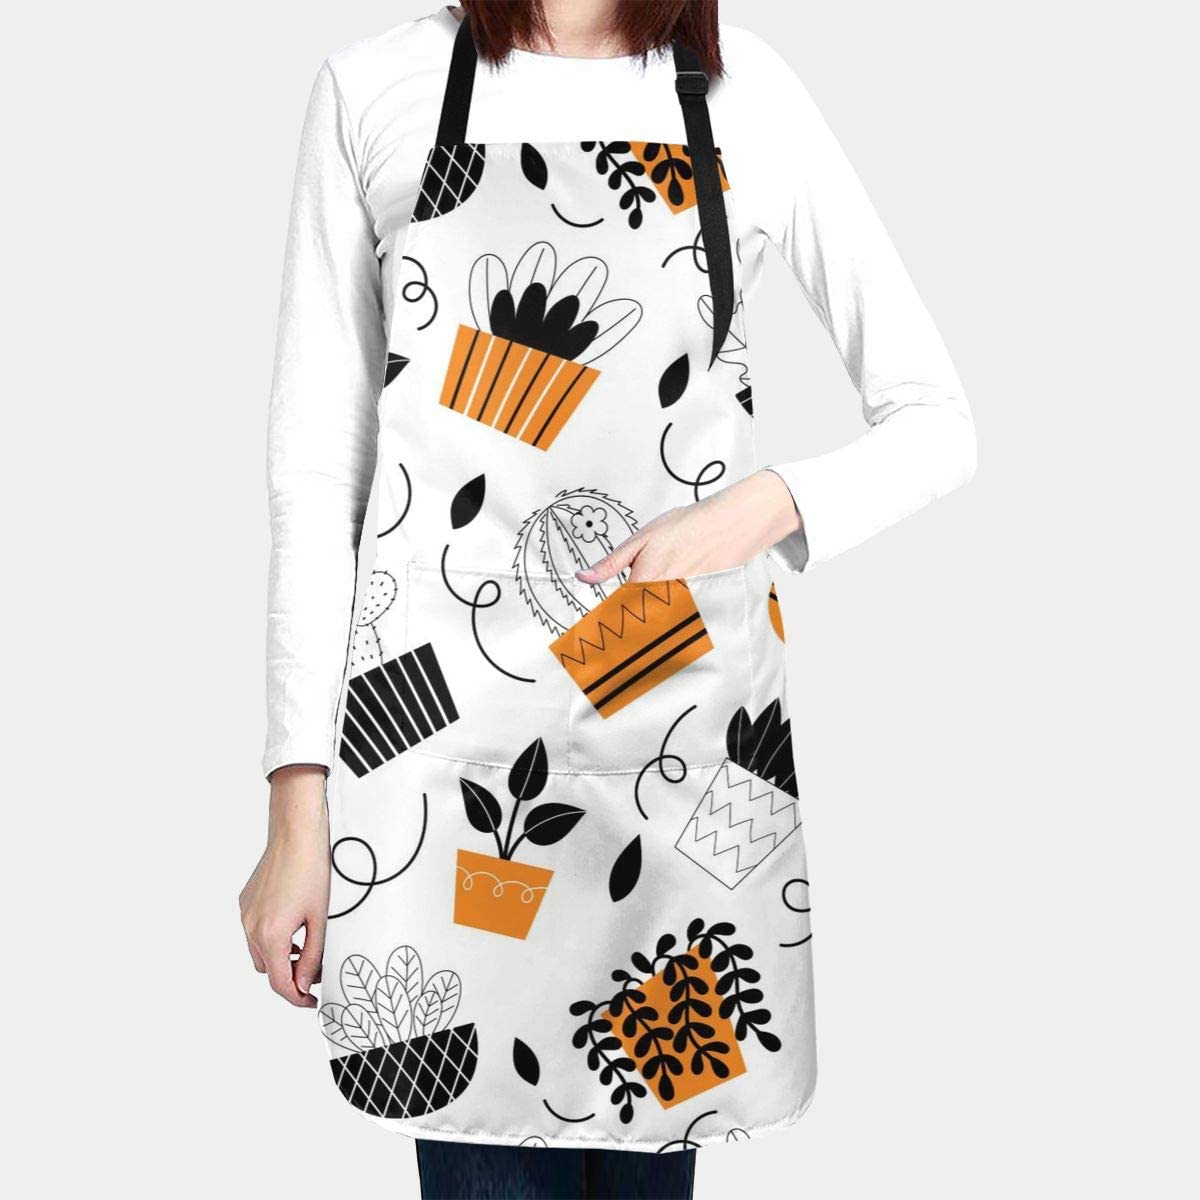 Urban Plants Apron Fashion Design Water Proof Baking Apron for Women with 2 Front Pockets and Adjustable Neck & Long Ties for Everyday Basic Home Kitchen Artist Crafting Restaurant